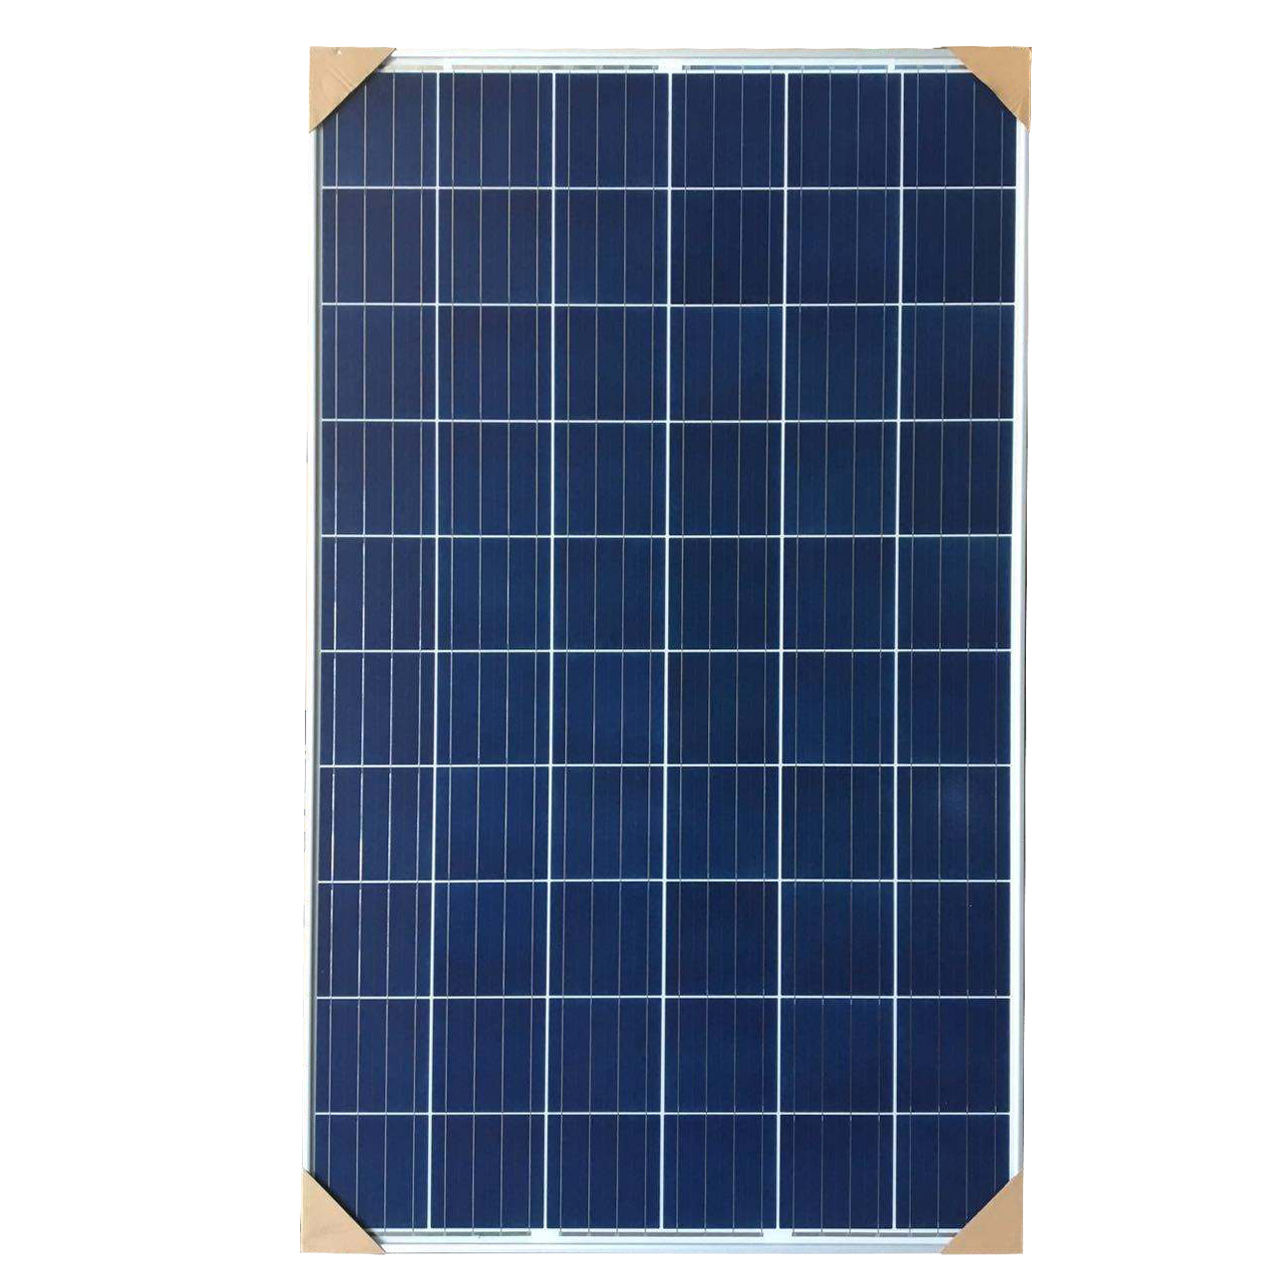 Excellent quality 270 watts poly solar panels solar module for home and outdoor use